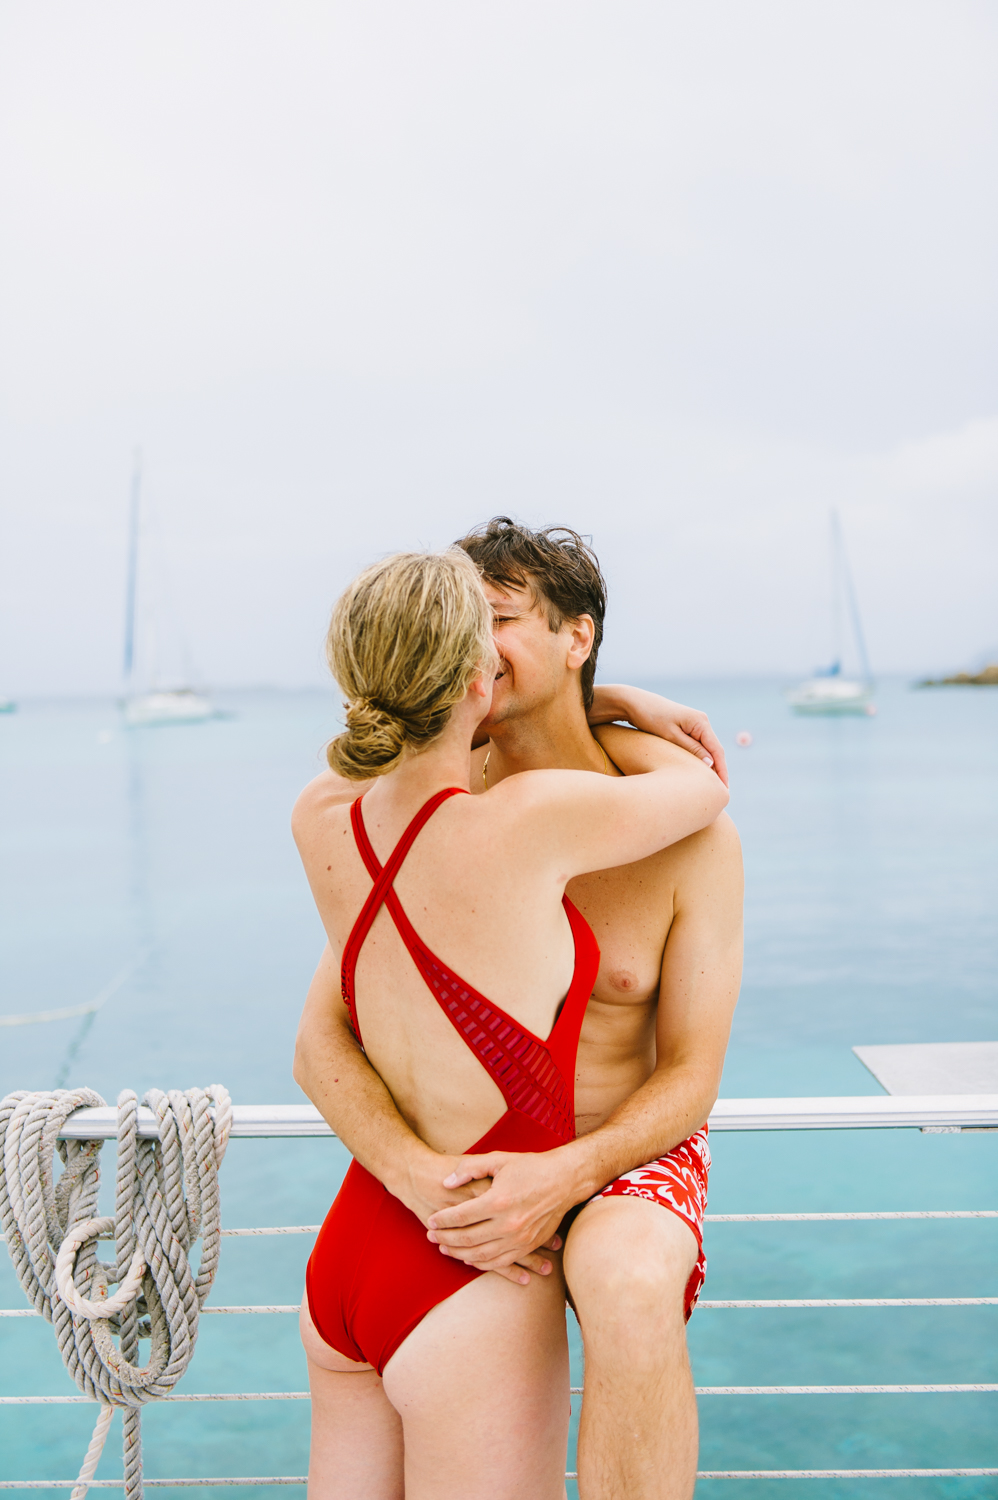 St.Thomas.FrenchmansReef.Wedding.Leme16.jpg